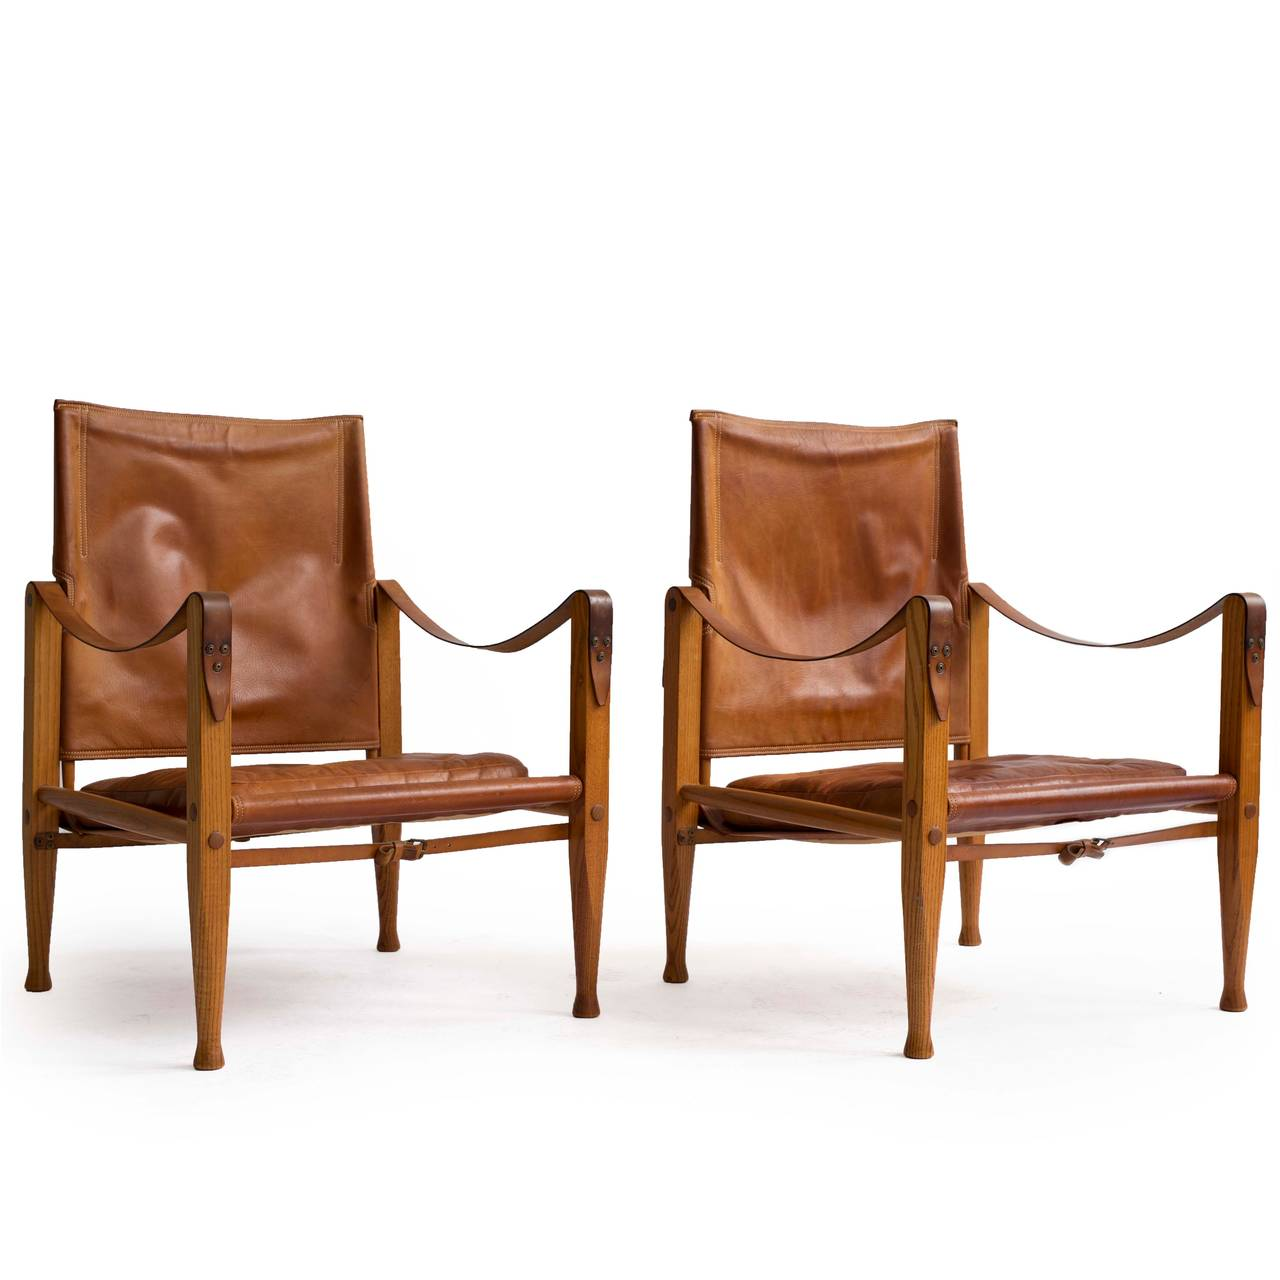 A pair of Kaare Klint 'Safari chairs' with ash frame, upholstered with original patinated natural leather.   Designed by Kaare Klint 1933, manufactured by Rud. Rasmussen, Copenhagen, Denmark.   Very well preserved original condition.